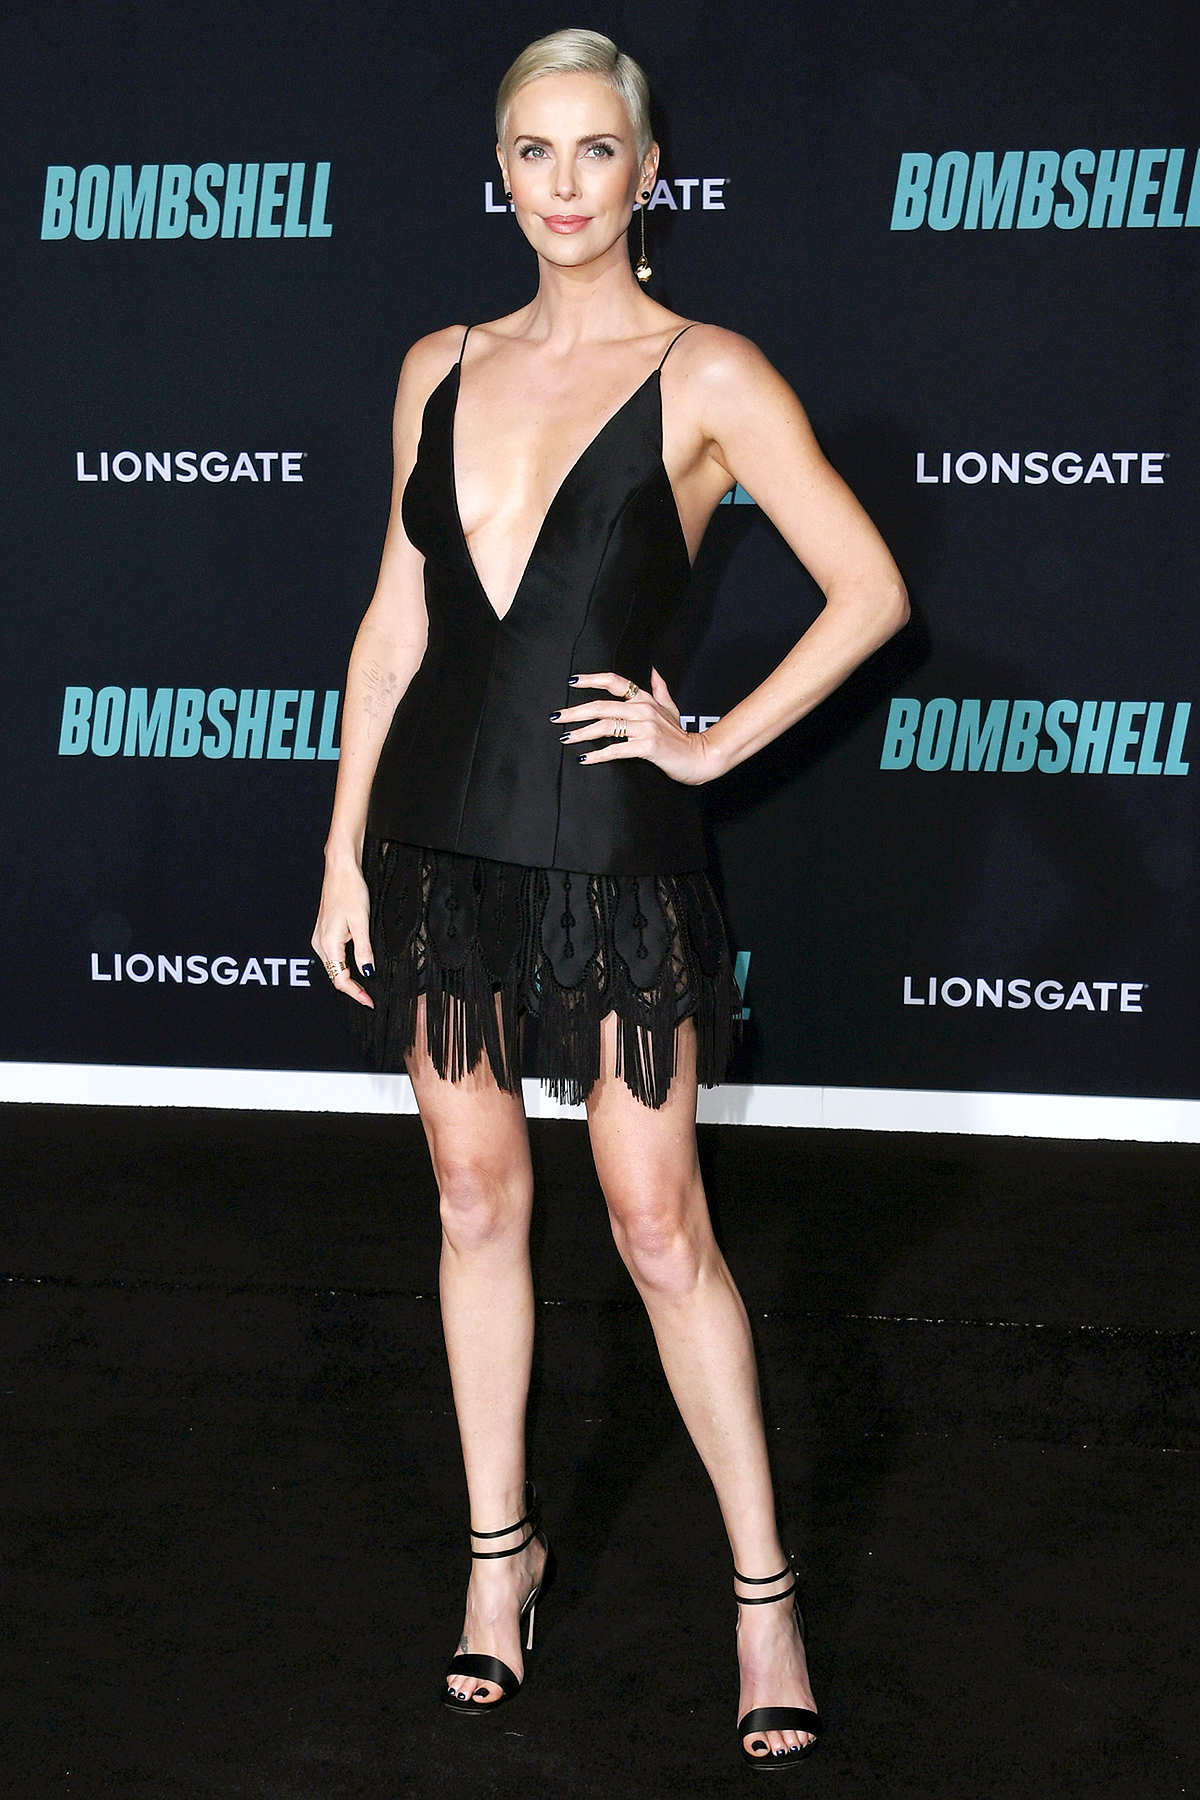 """WESTWOOD, CALIFORNIA - DECEMBER 10: Charlize Theron attends Special Screening Of Liongate's """"Bombshell"""" at Regency Village Theatre on December 10, 2019 in Westwood, California."""